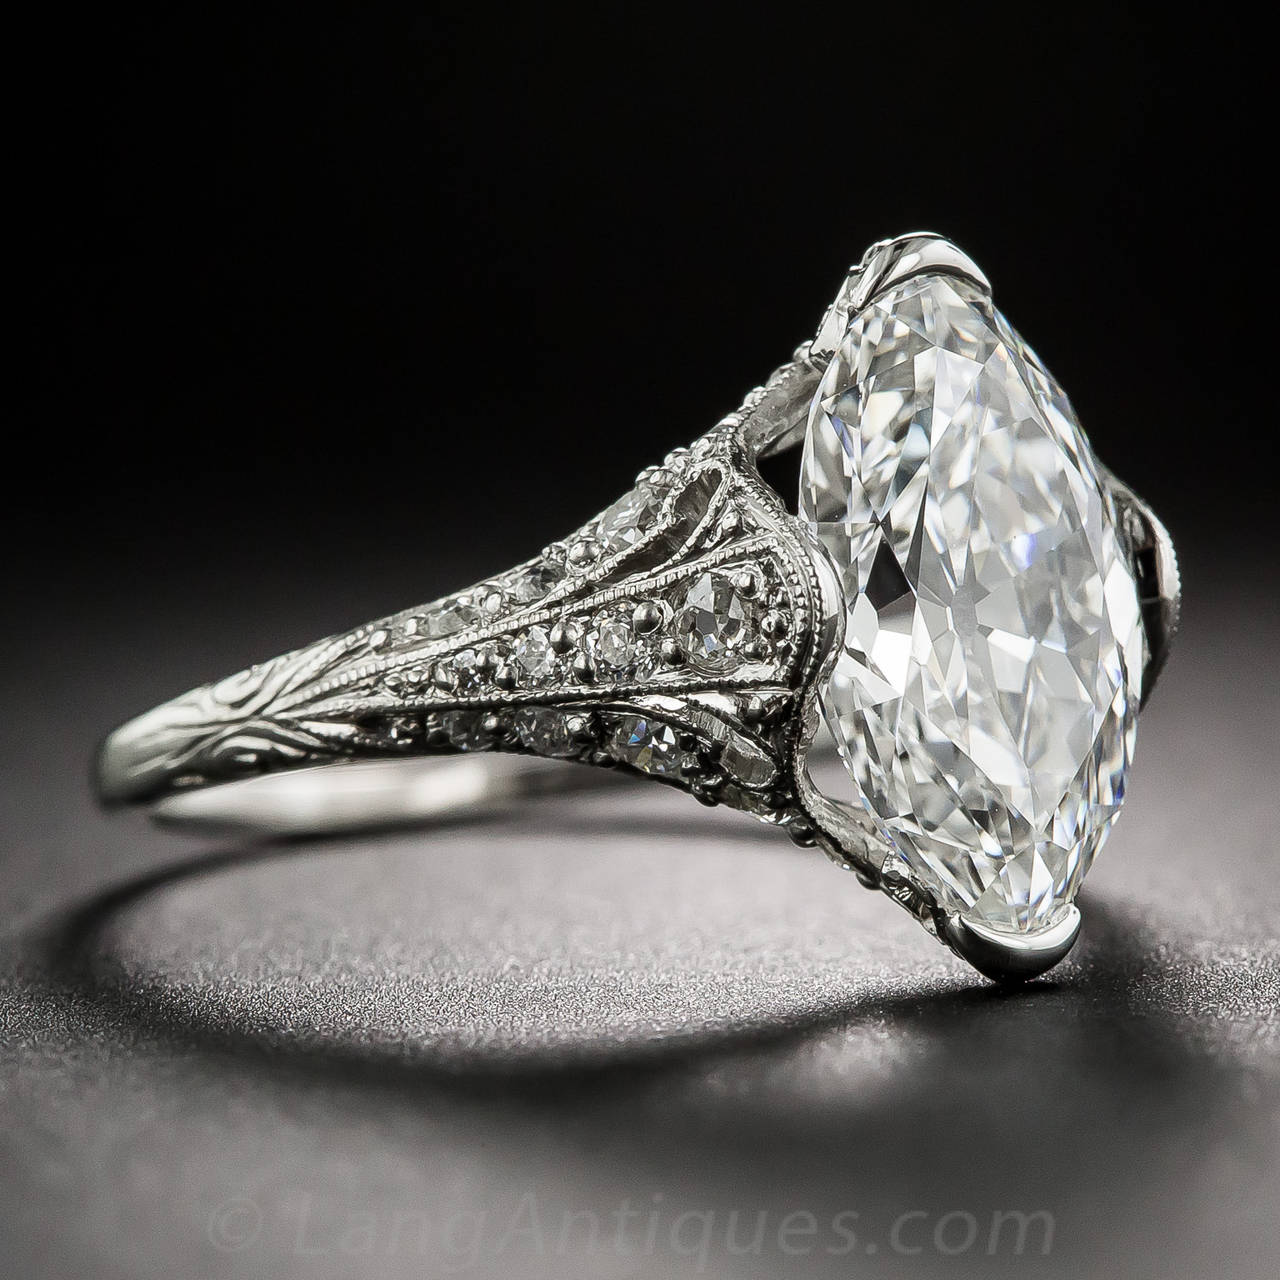 Tiffany & Co. Edwardian 3.14 Carat Marquise Diamond Platinum Ring 3